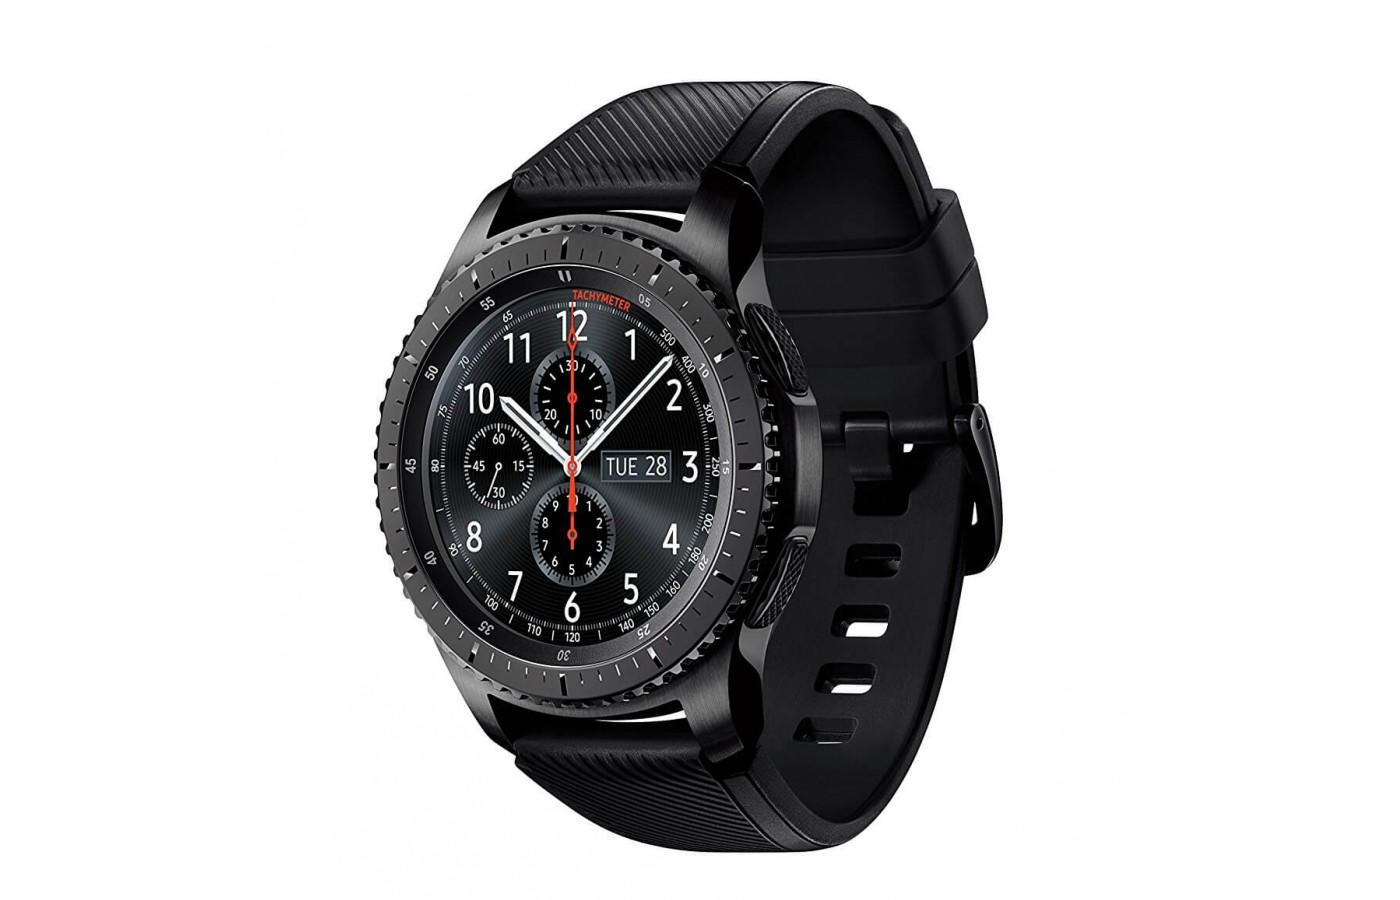 the Samsung Gear S3 Frontier shown from the front/side